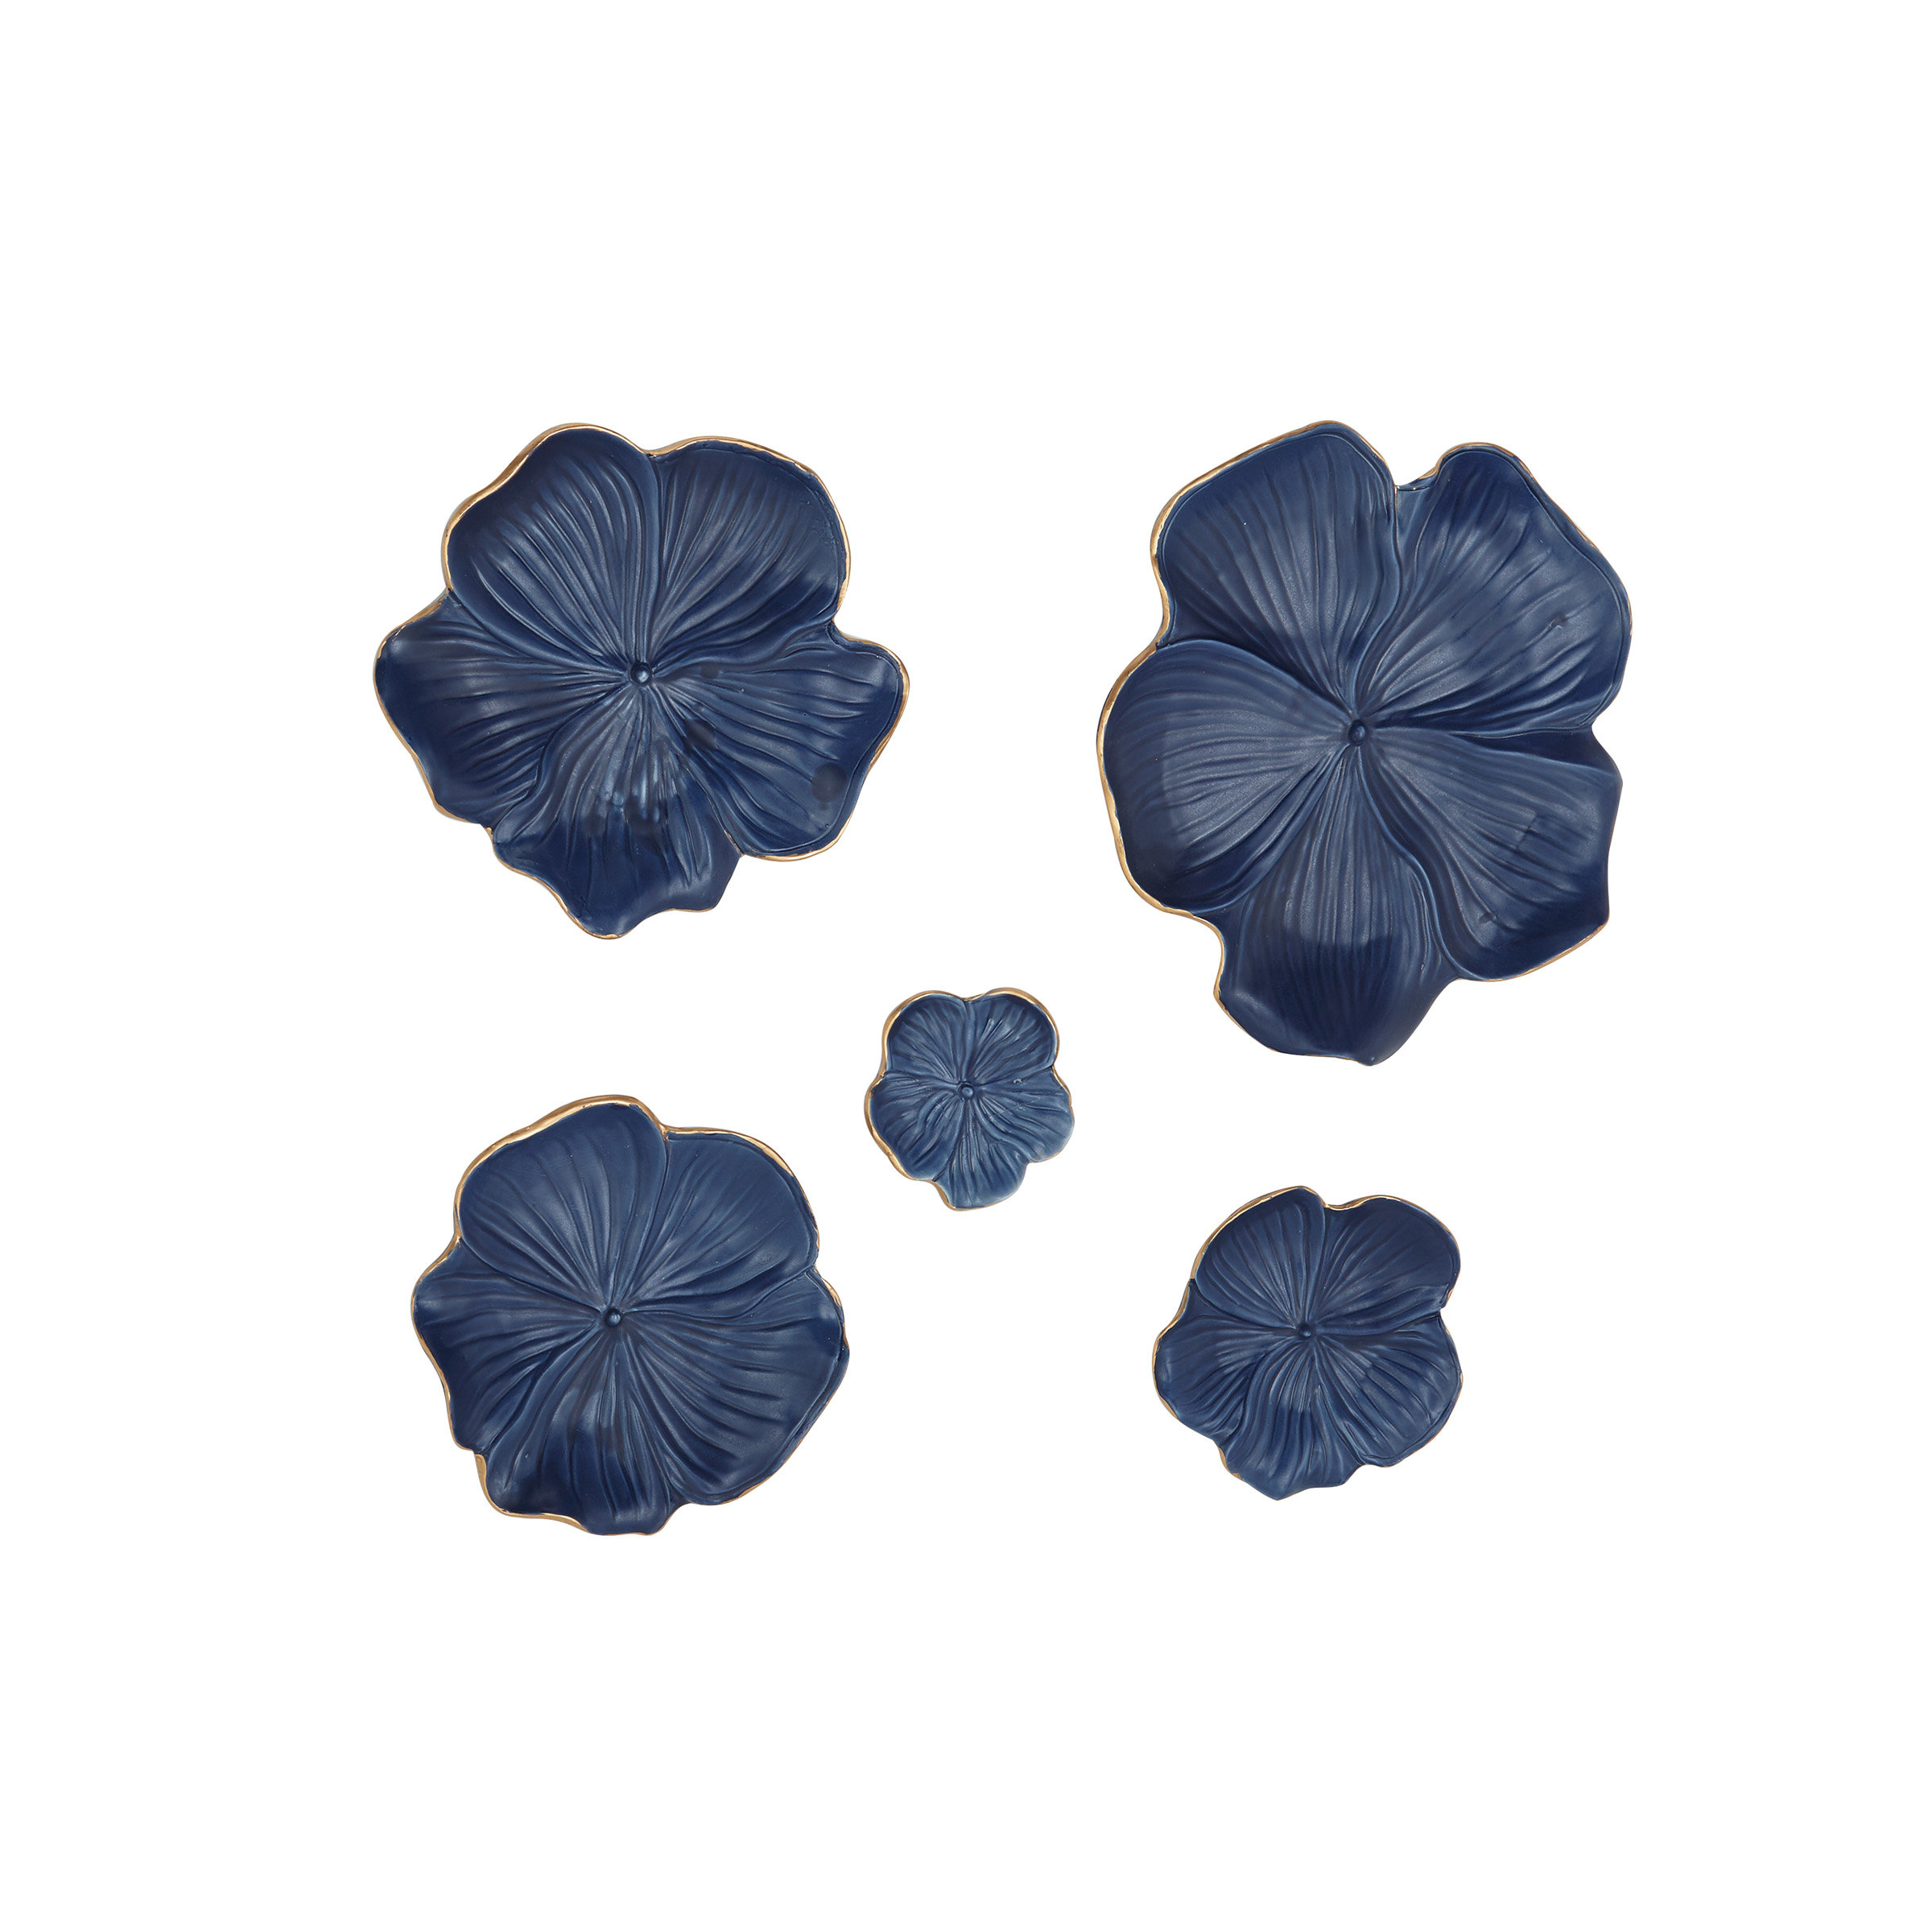 Bellefonte 5 Piece Ceramic Floral Wall Decor Set Within Mariposa 9 Piece Wall Decor (View 7 of 30)